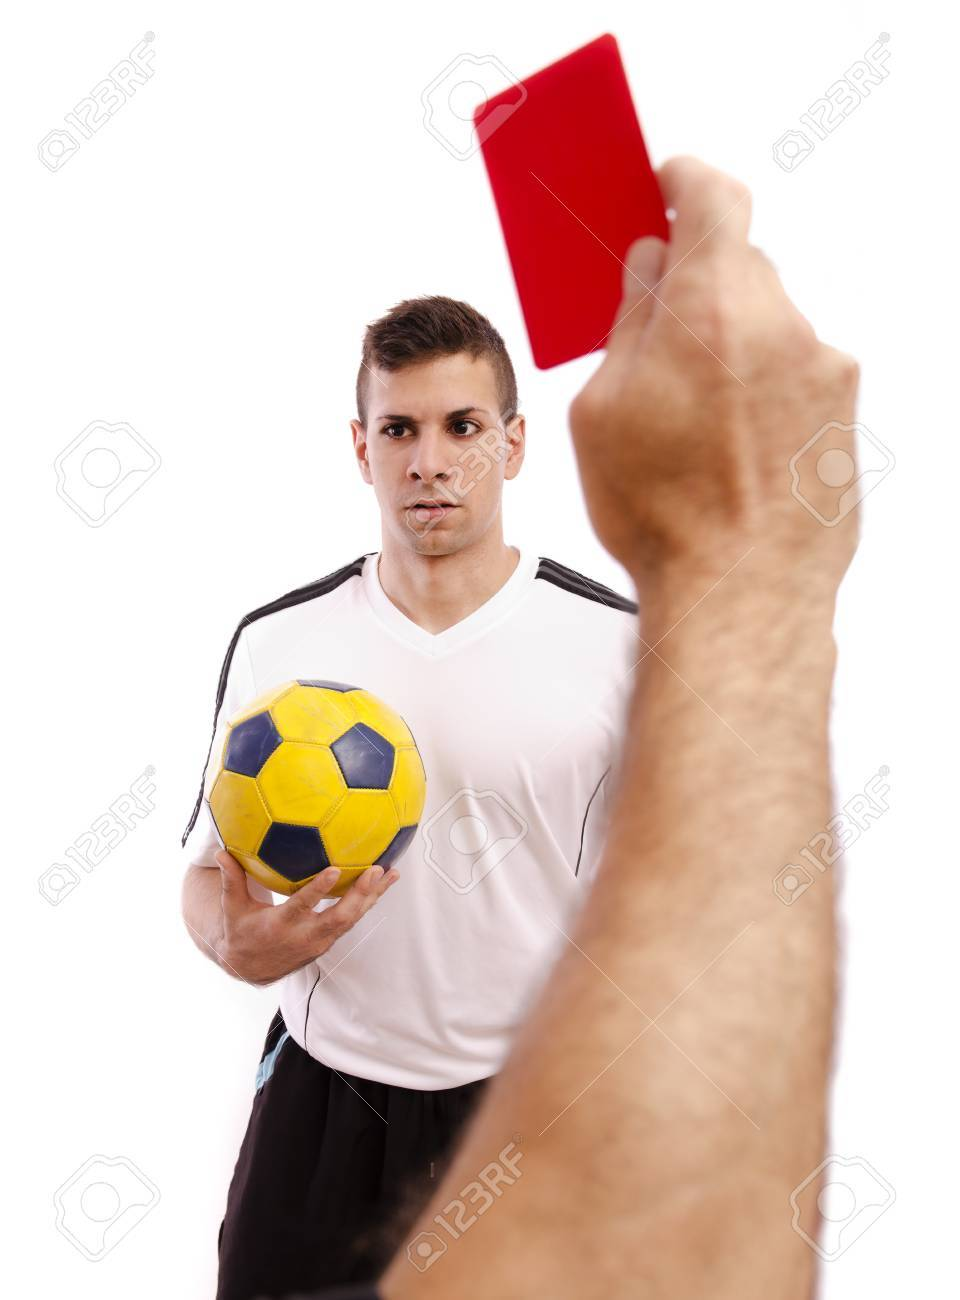 Referee show red card to soccer player, isolated on white. Stock Photo - 22483912